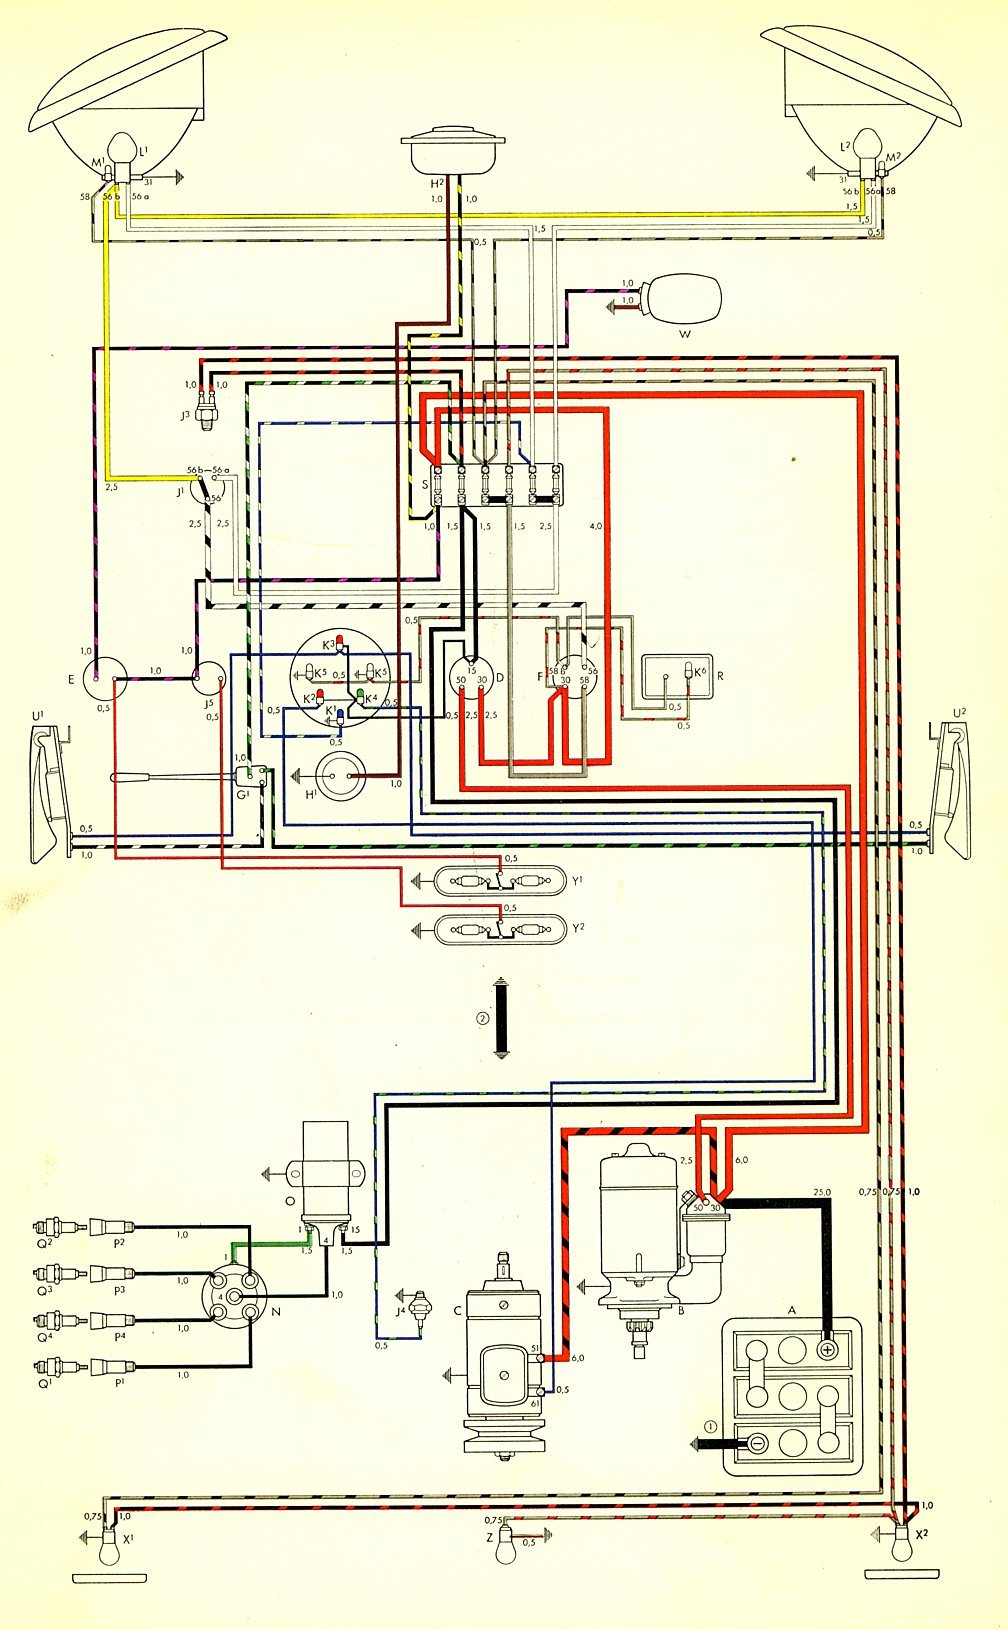 bus_59 bus wiring diagram vw wiring harness diagram \u2022 wiring diagrams j Electrical Wiring Diagrams at gsmx.co